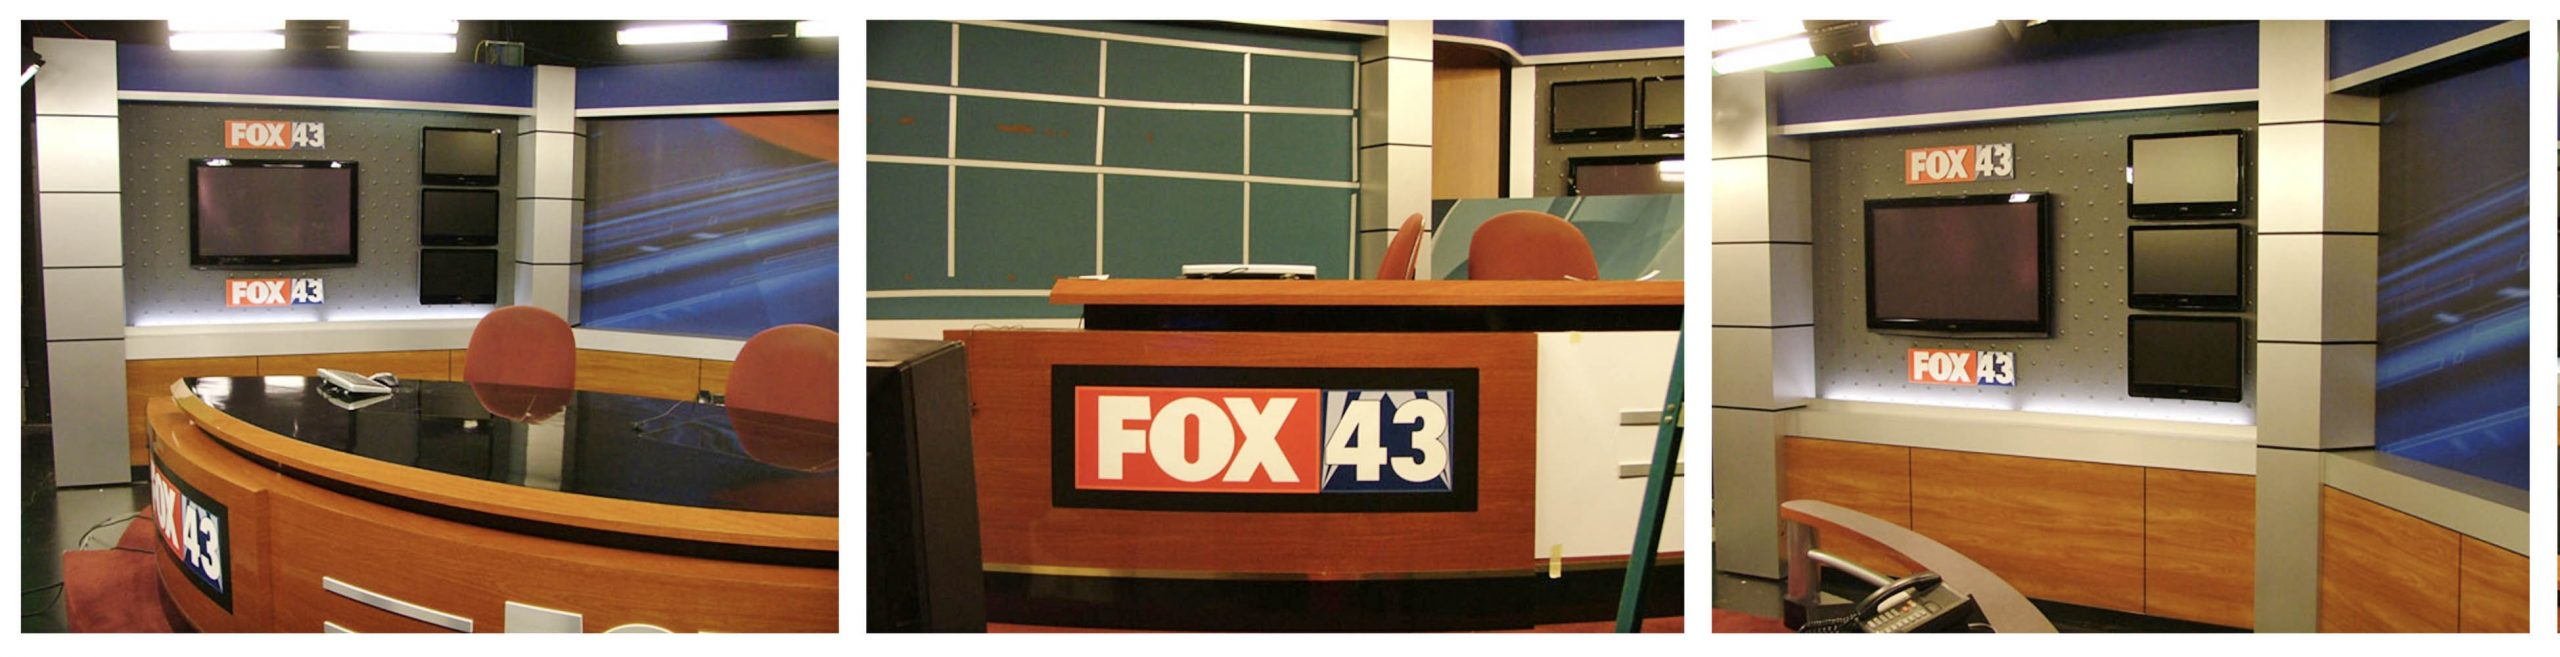 WPMT Fox 43 Studio waiting for anchor to start show